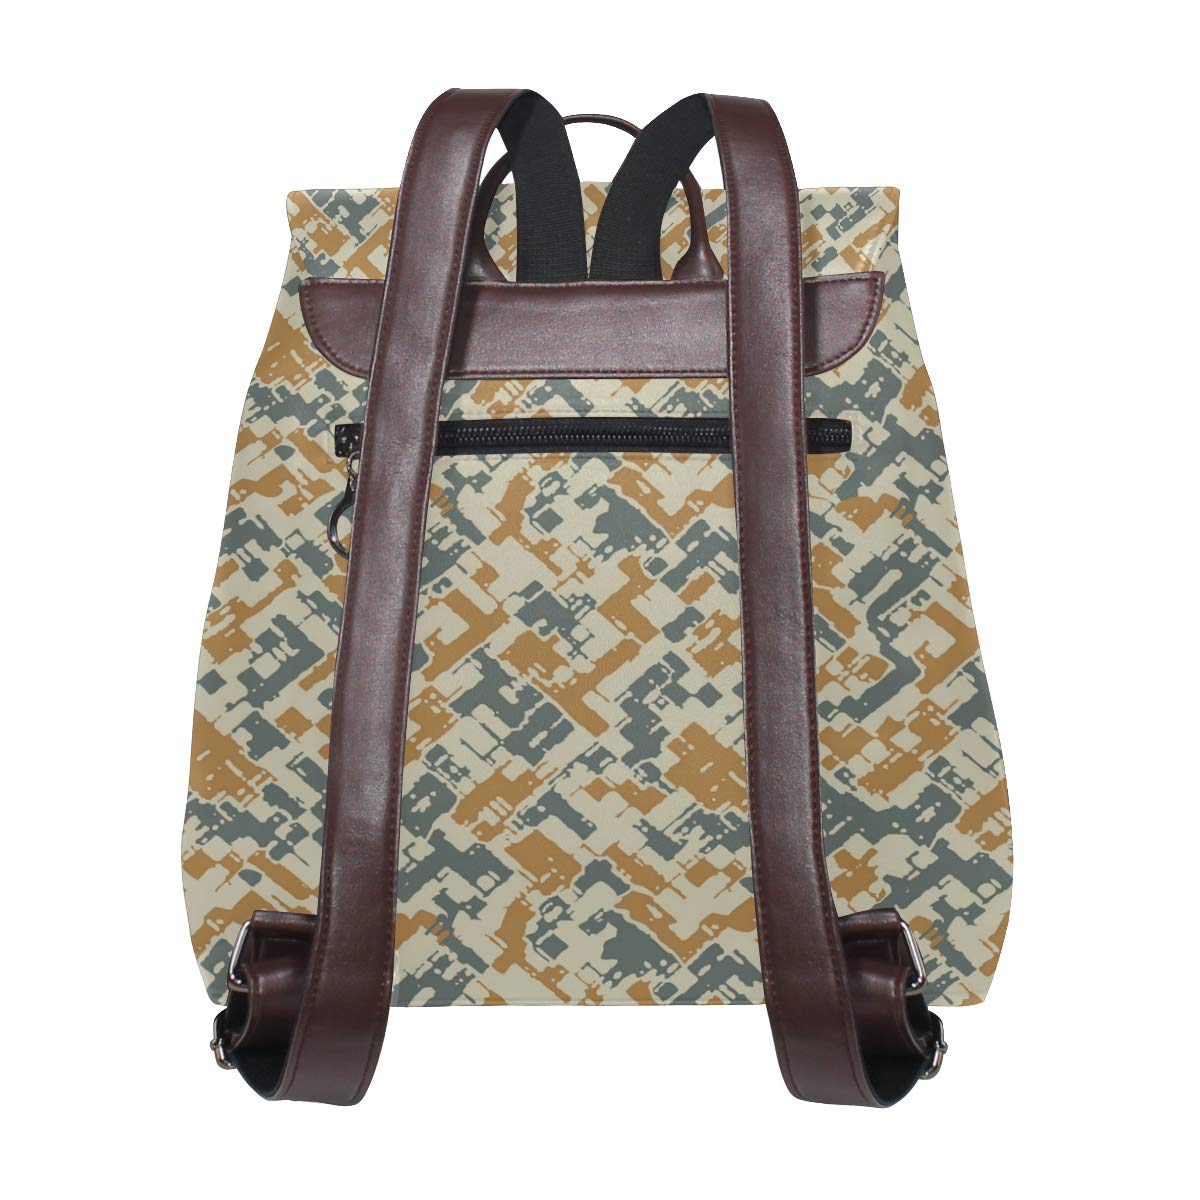 Unisex PU Leather Backpack Teal Camo for Women Brown Print Womens Casual Daypack Mens Travel Sports Bag Boys College Bookbag